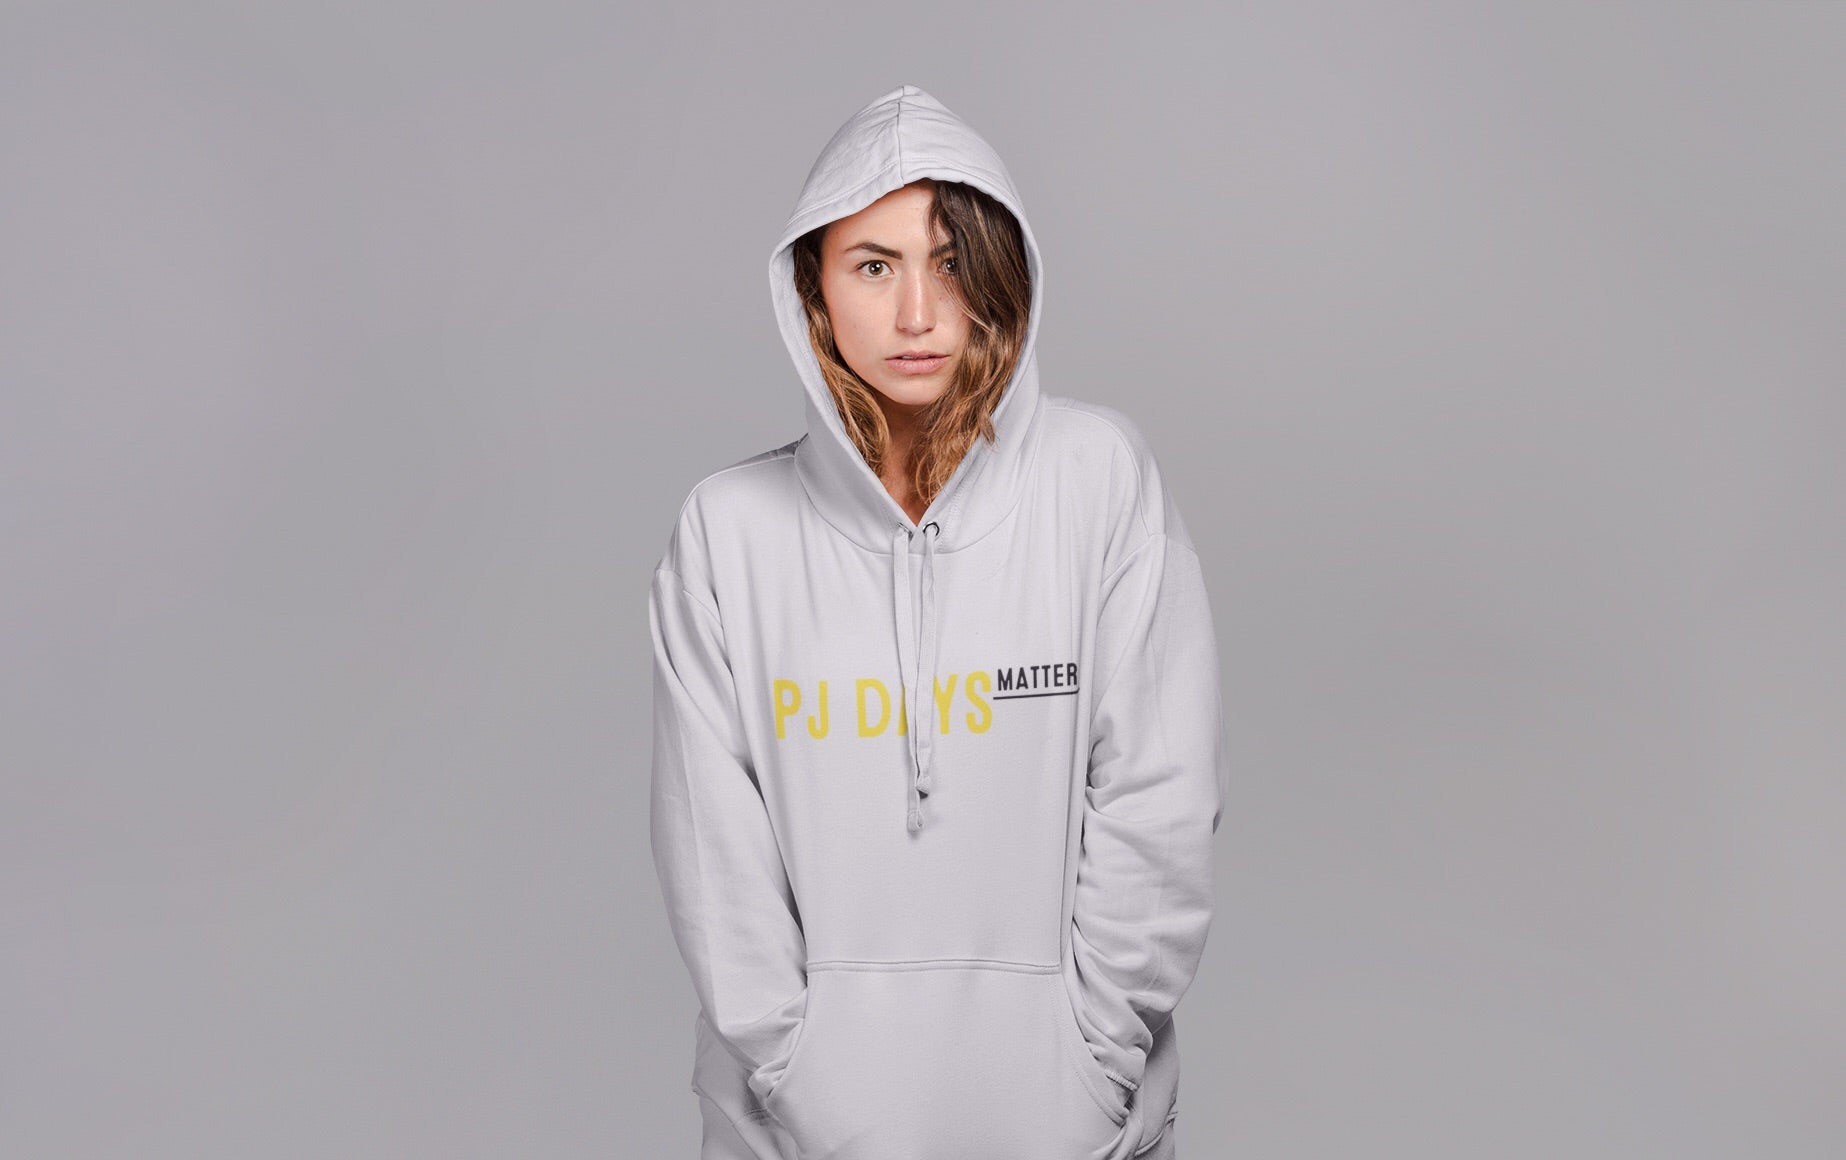 PJ Days Matter unisex Lounge Wear